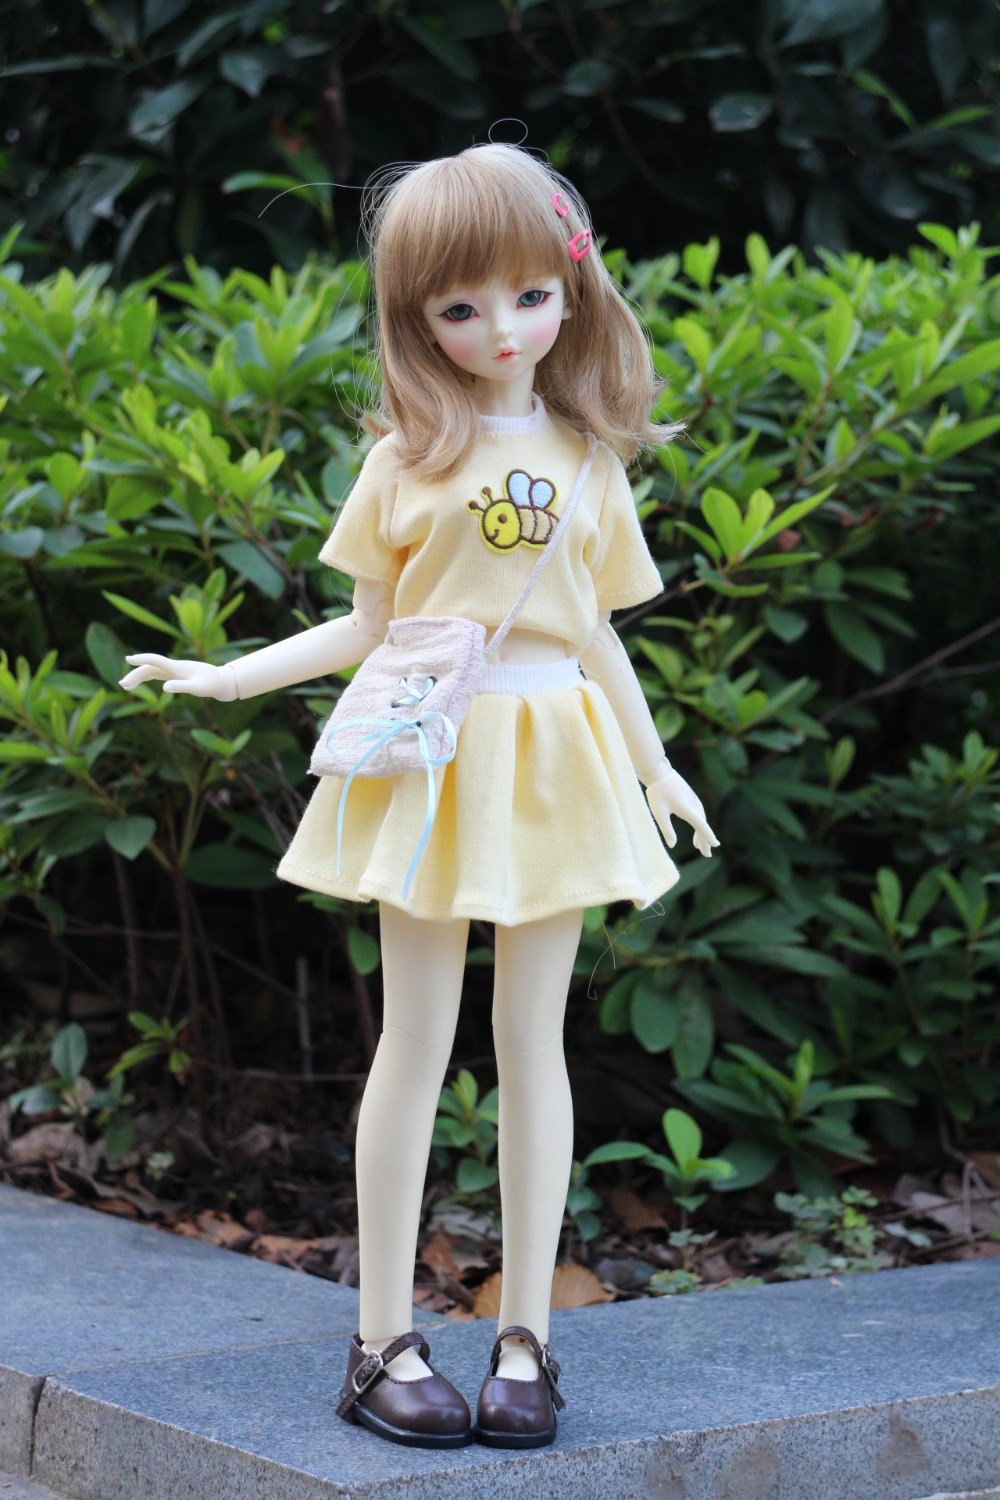 16 Girl Yosd Bjd Doll Clothes Skirt Suits Coat FY04 In Dolls Accessories From Toys Amp Hobbies On